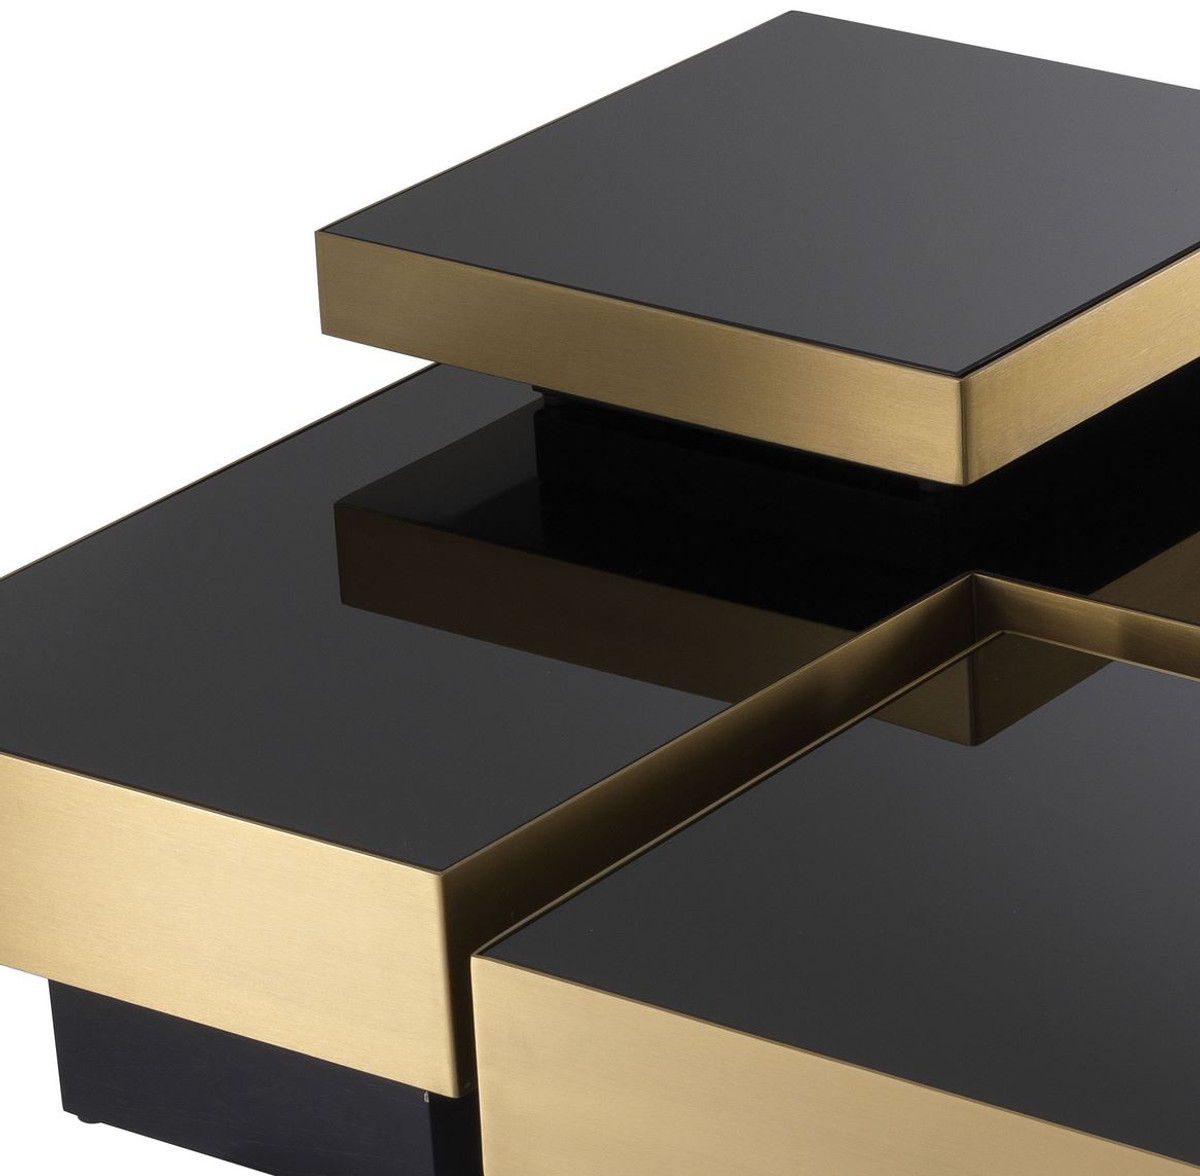 casa padrino luxury coffee table set brass black 2 l shaped living room tables with 2 square trays living room furniture luxury collection